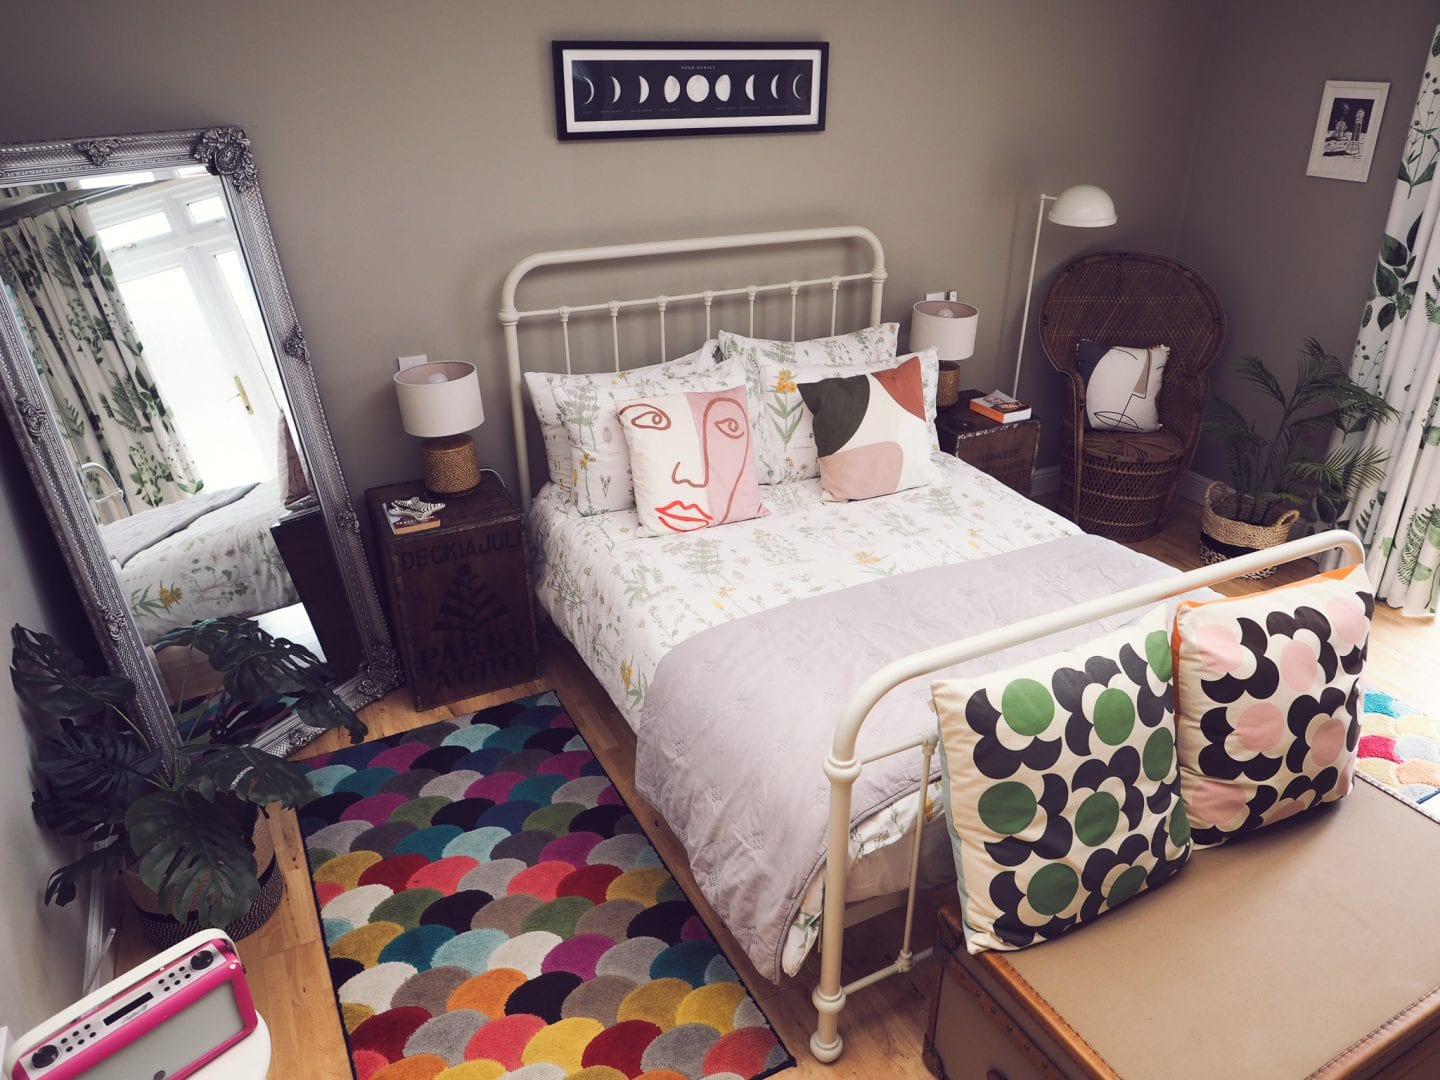 margate airbnb where to stay airbnb refer a friend code